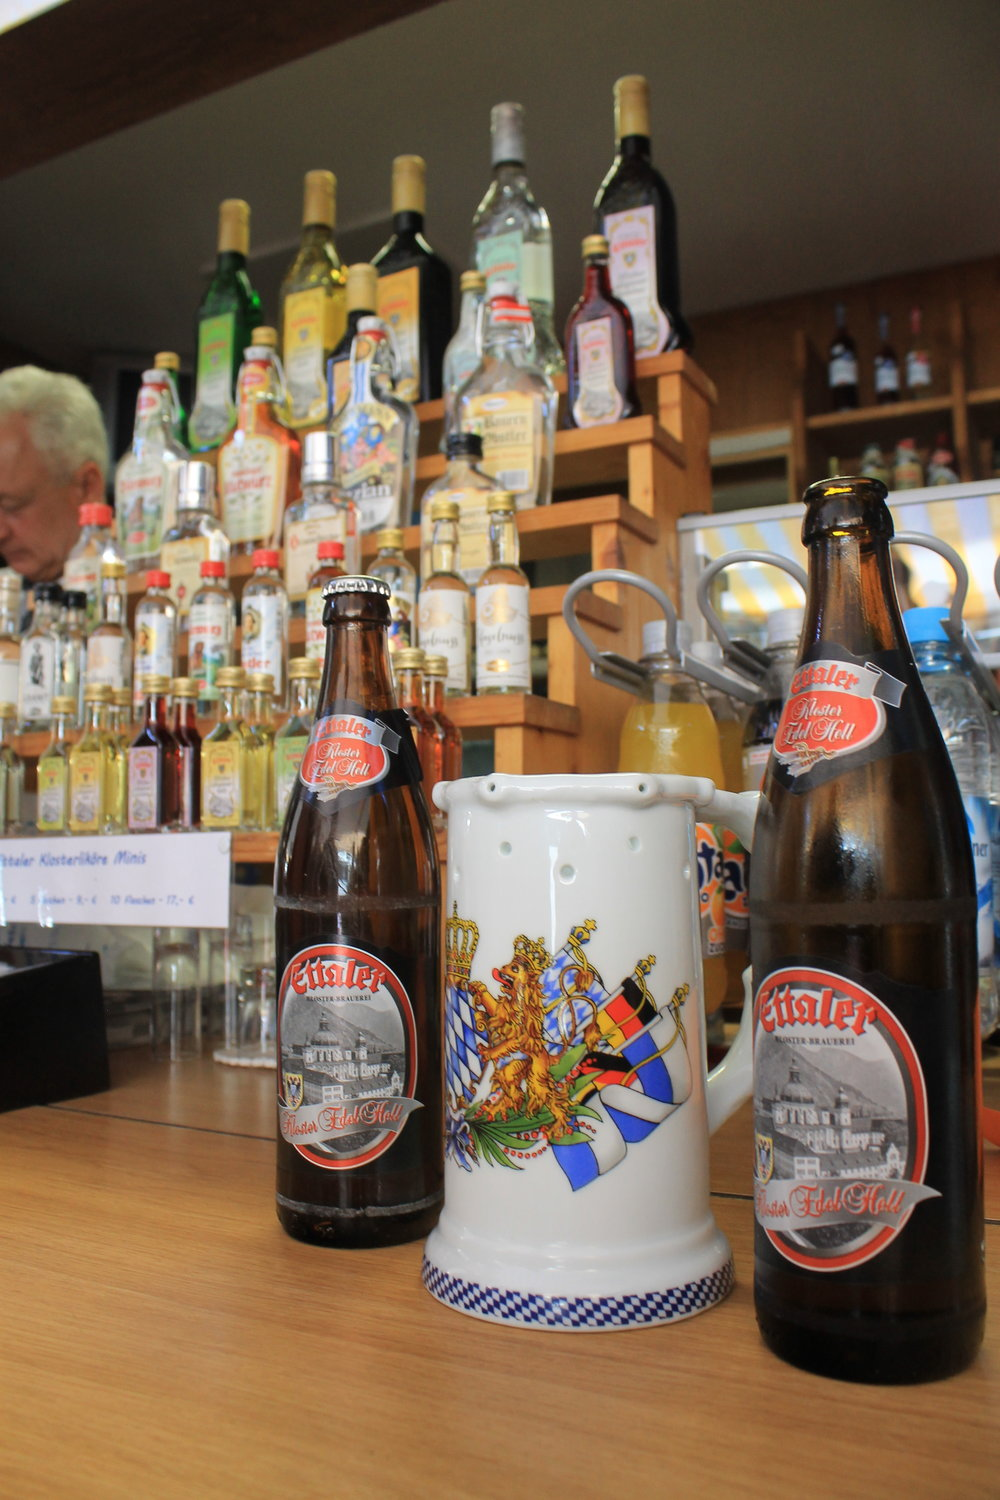 Ettal Monastery beer and schnapps